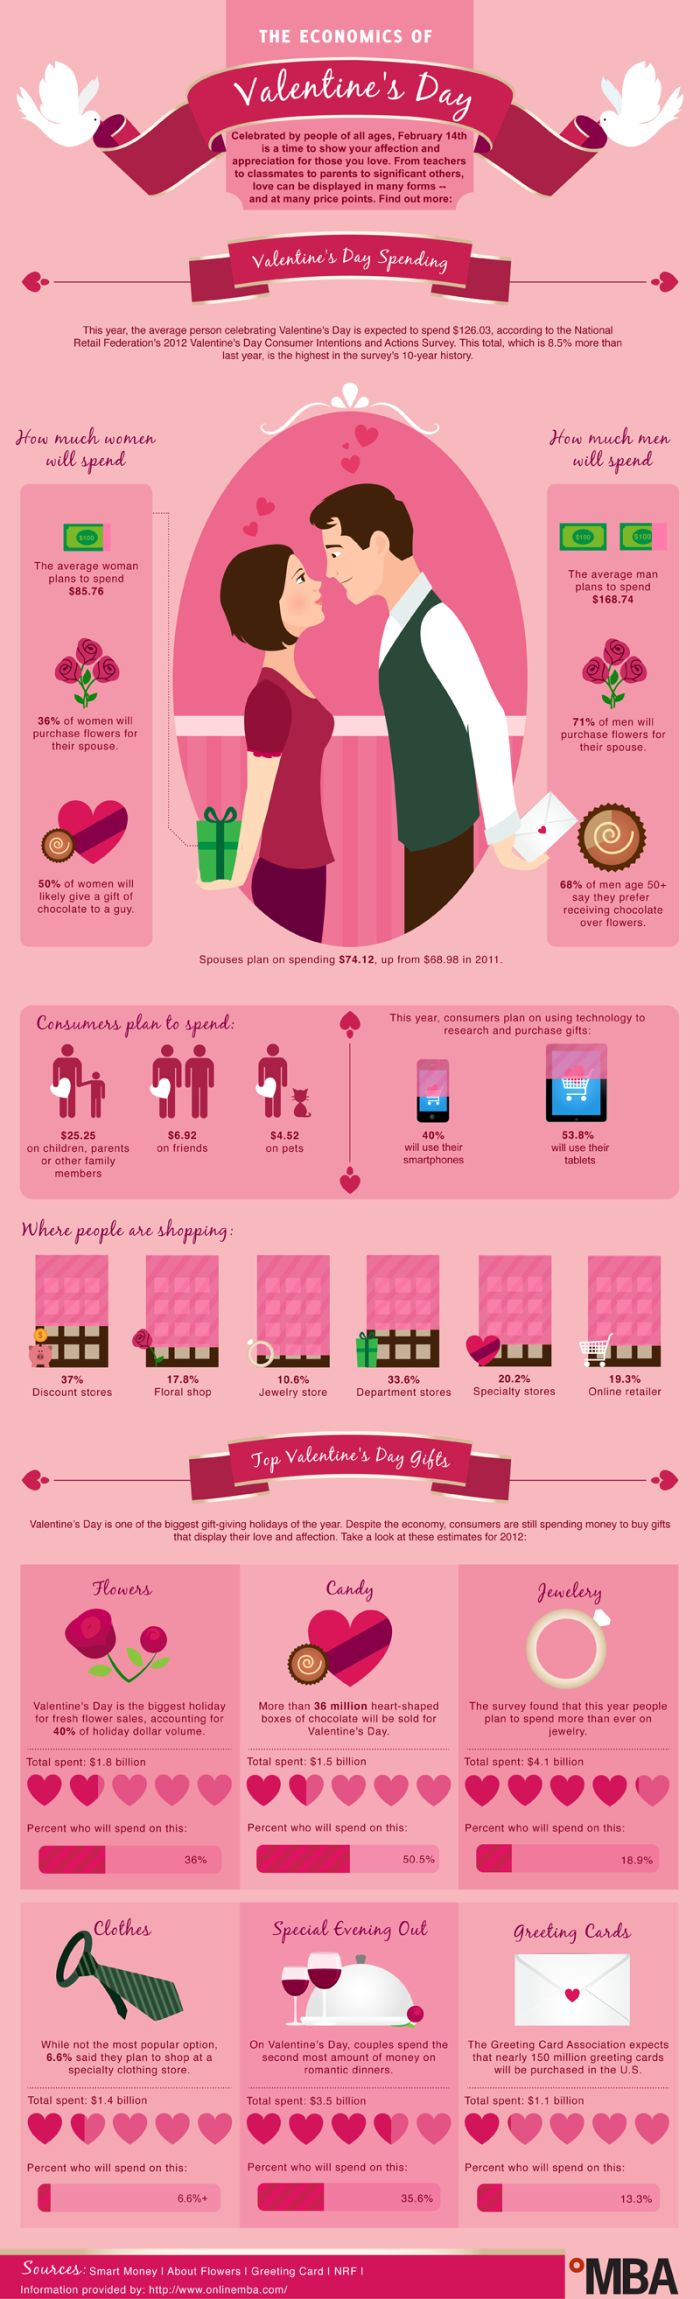 The Economics of Valentine's Day (infographic)